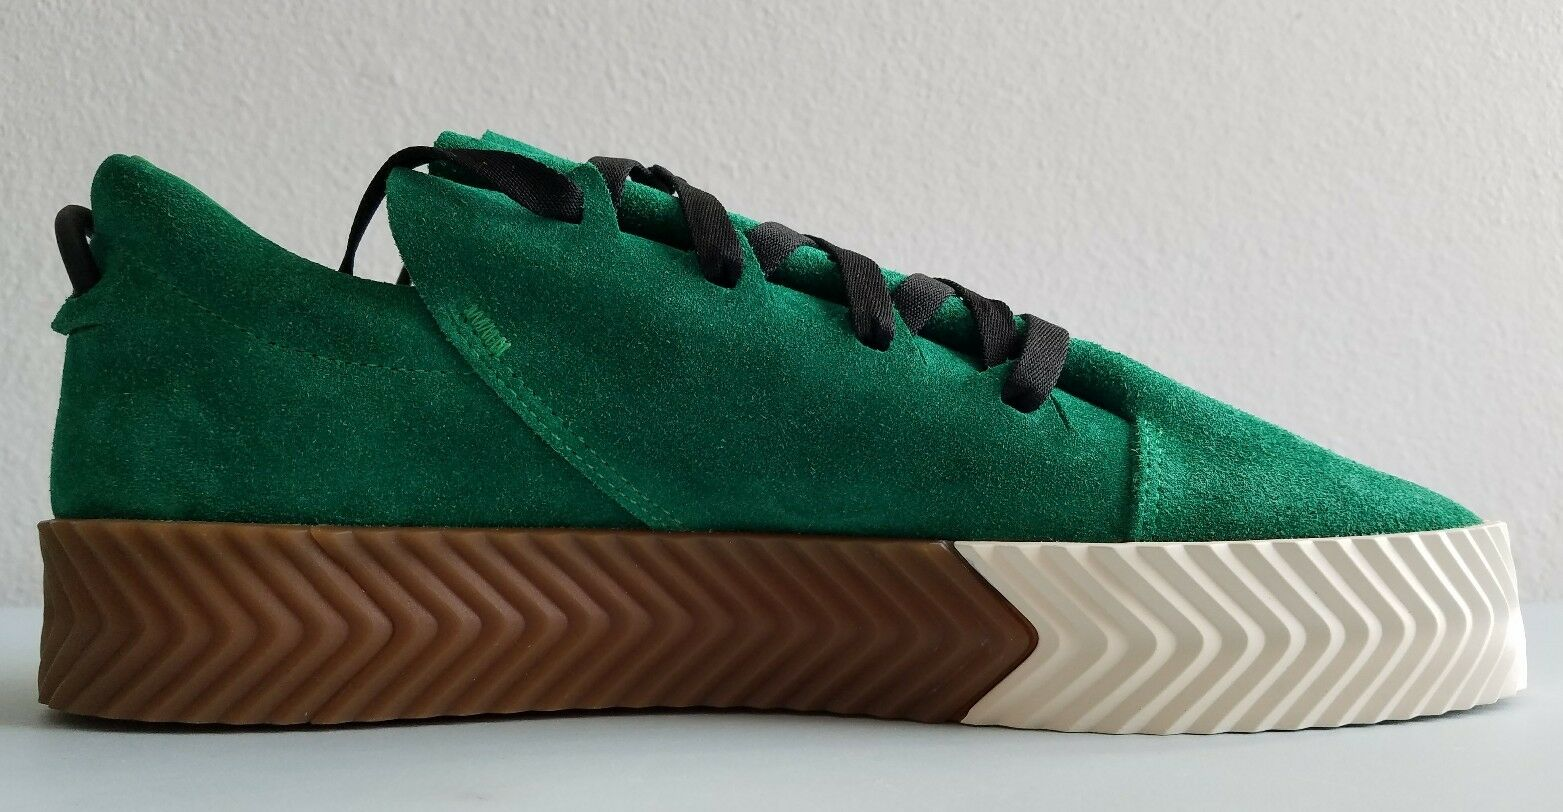 Adidas Originals Alexander Wang AW Skate Green BY8907 Mens Size 6 New